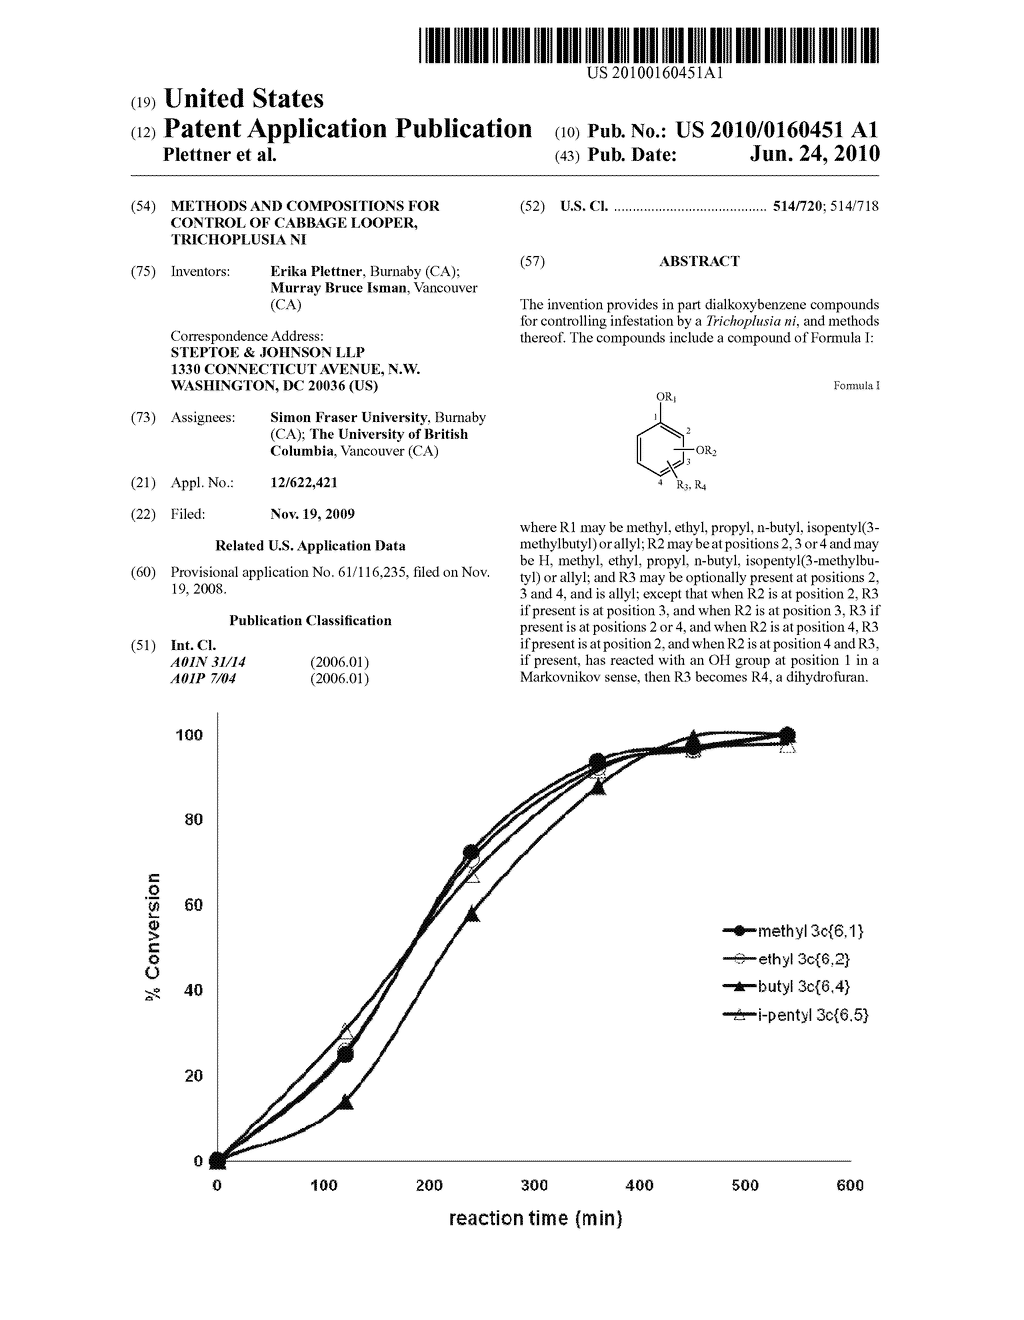 METHODS AND COMPOSITIONS FOR CONTROL OF CABBAGE LOOPER